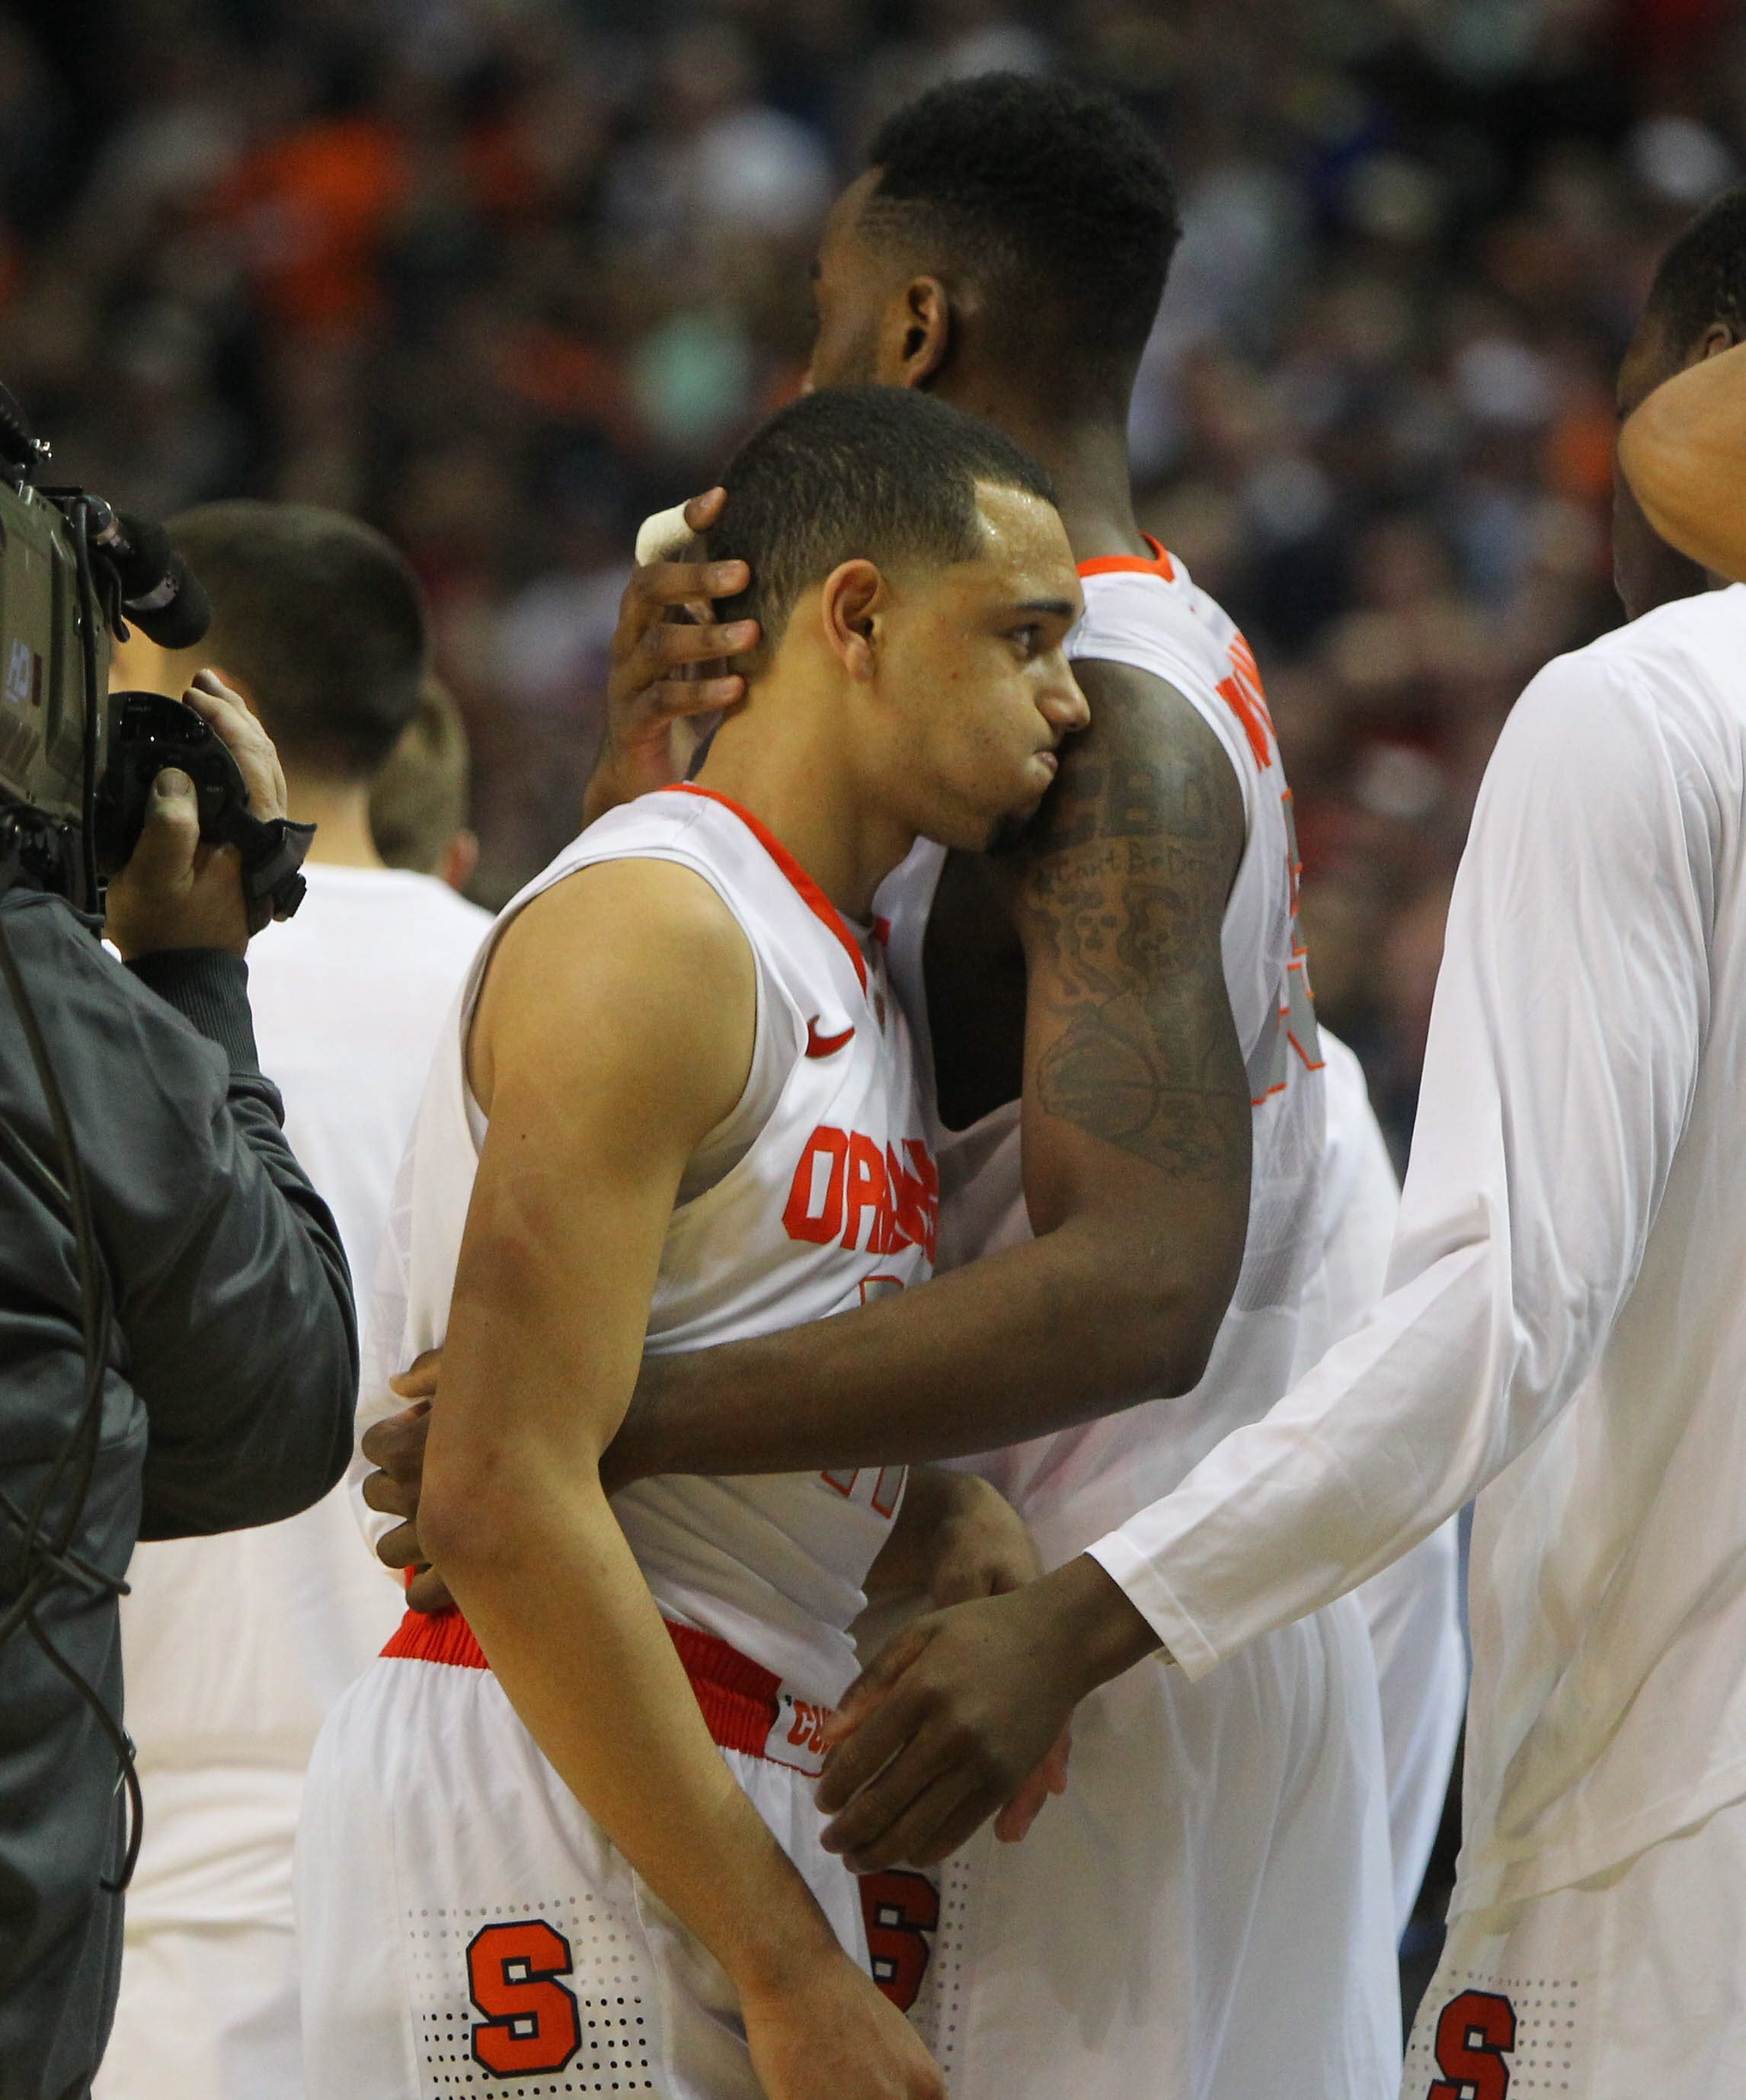 Syracuse's Tyler Ennis is hugged by teammate Rakeem Christmas after Saturday night's 55-53 loss to Dayton. Ennis missed a potential game-winning shot at the buzzer.  ===